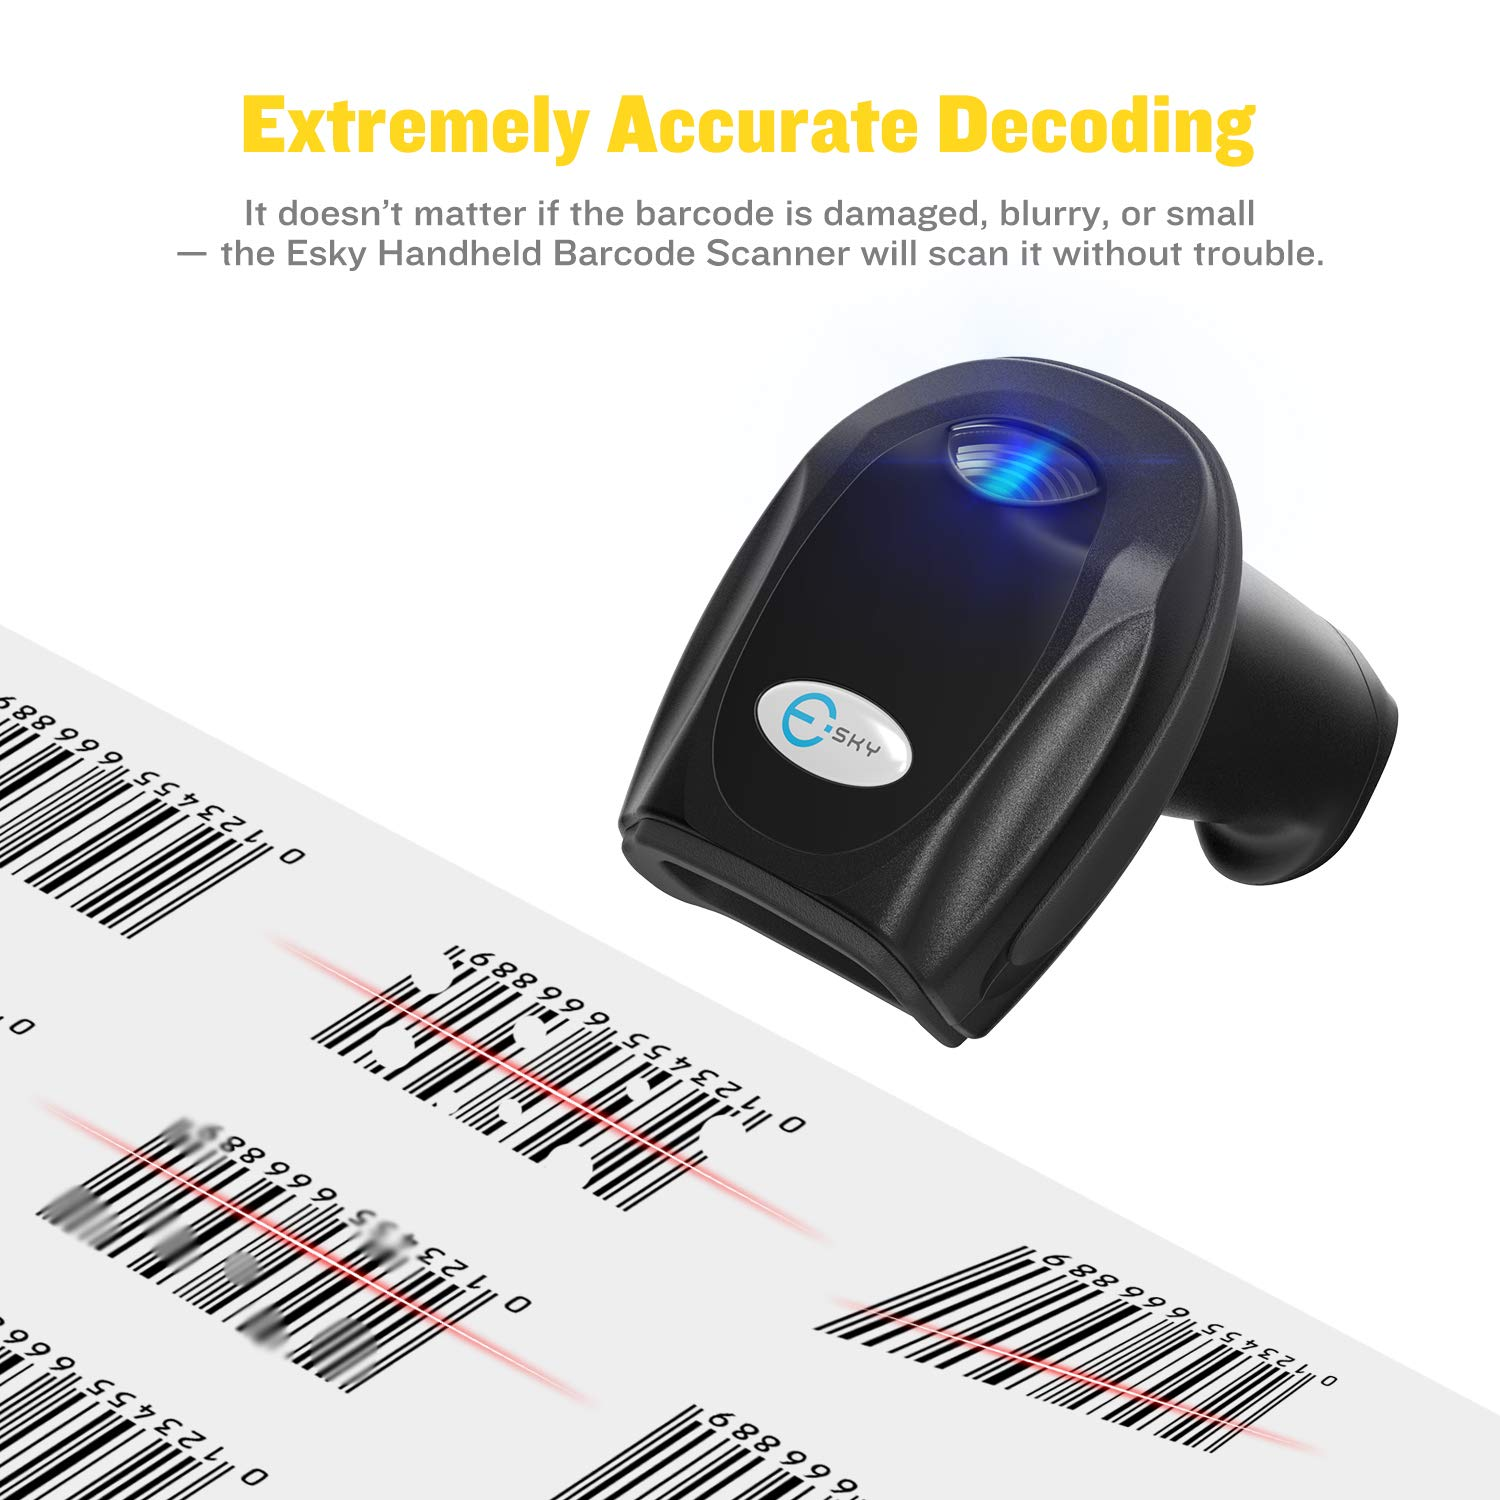 Esky 433MHz Wireless Barcode Scanner 328 Ft Transmission Distance USB Cordless 1D Laser Automatic Barcode Reader Handheld Barcode Scanner with Quick Charge Base for Shop, Store, Supermarket, Warehouse by Esky (Image #6)